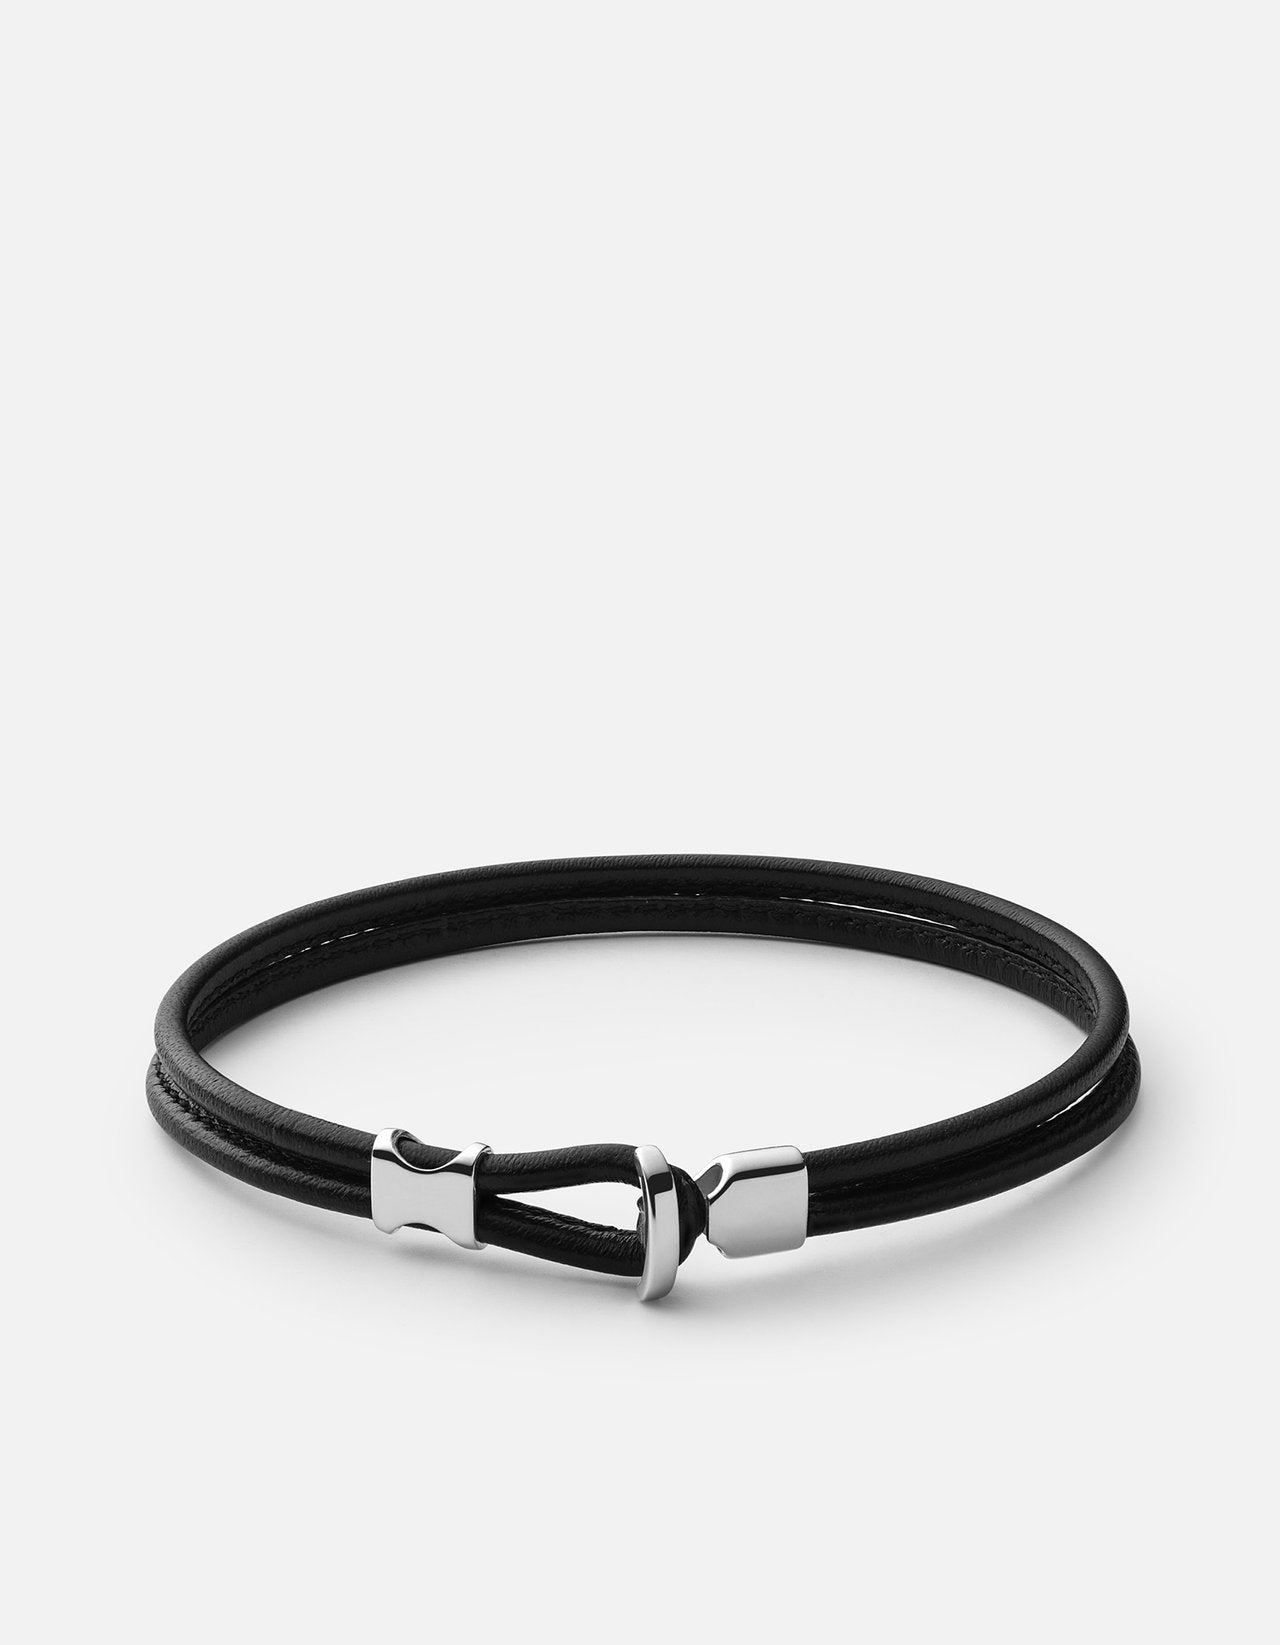 Miansai-Orson-Loop-Leather-Bracelet-Sterling-Silver